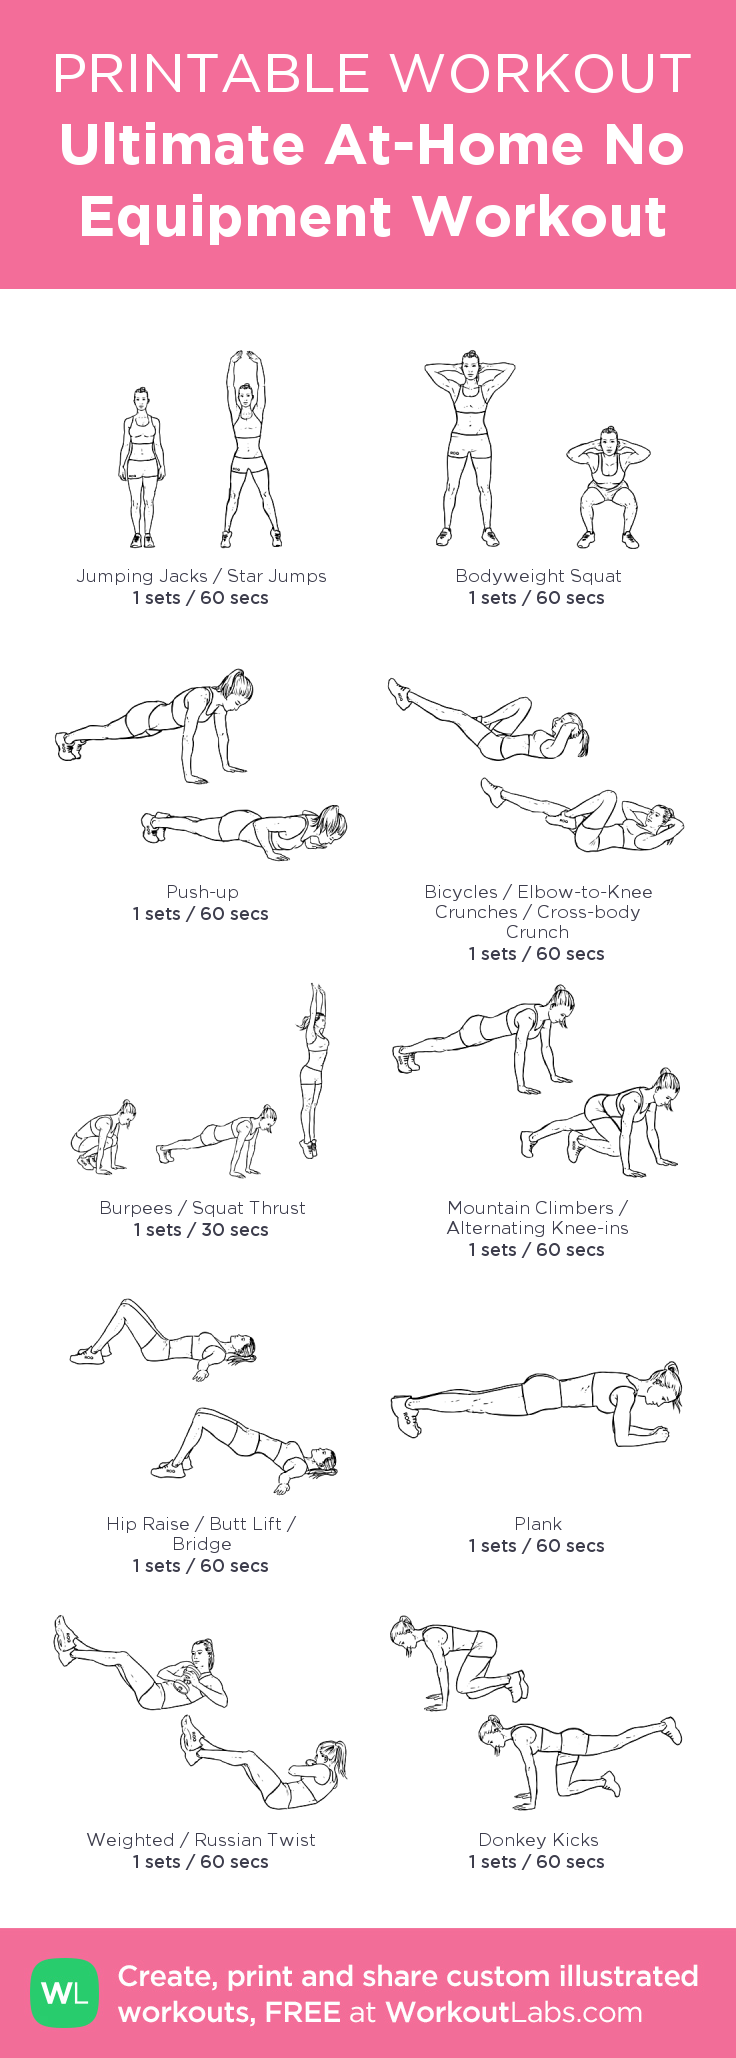 Ultimate At-Home No Equipment Workout – my custom workout created at WorkoutLabs.com • Click through to download as printable PDF! #customworkout